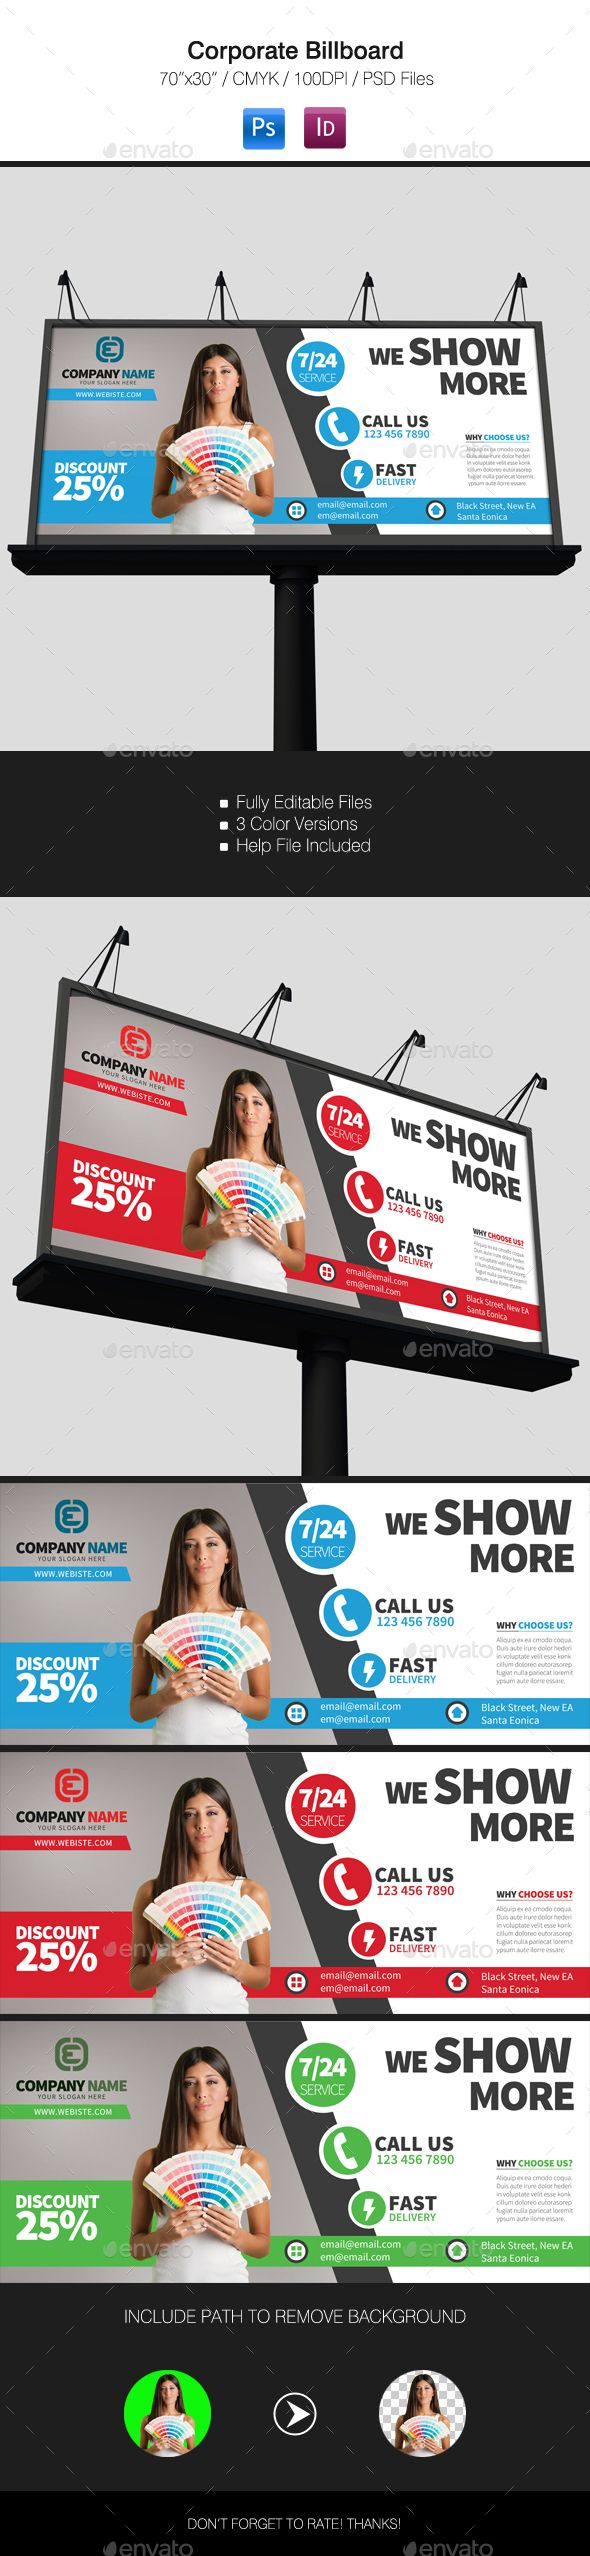 Corporate Billboard #design Download: http://graphicriver.net/item/corporate-billboard/11815331